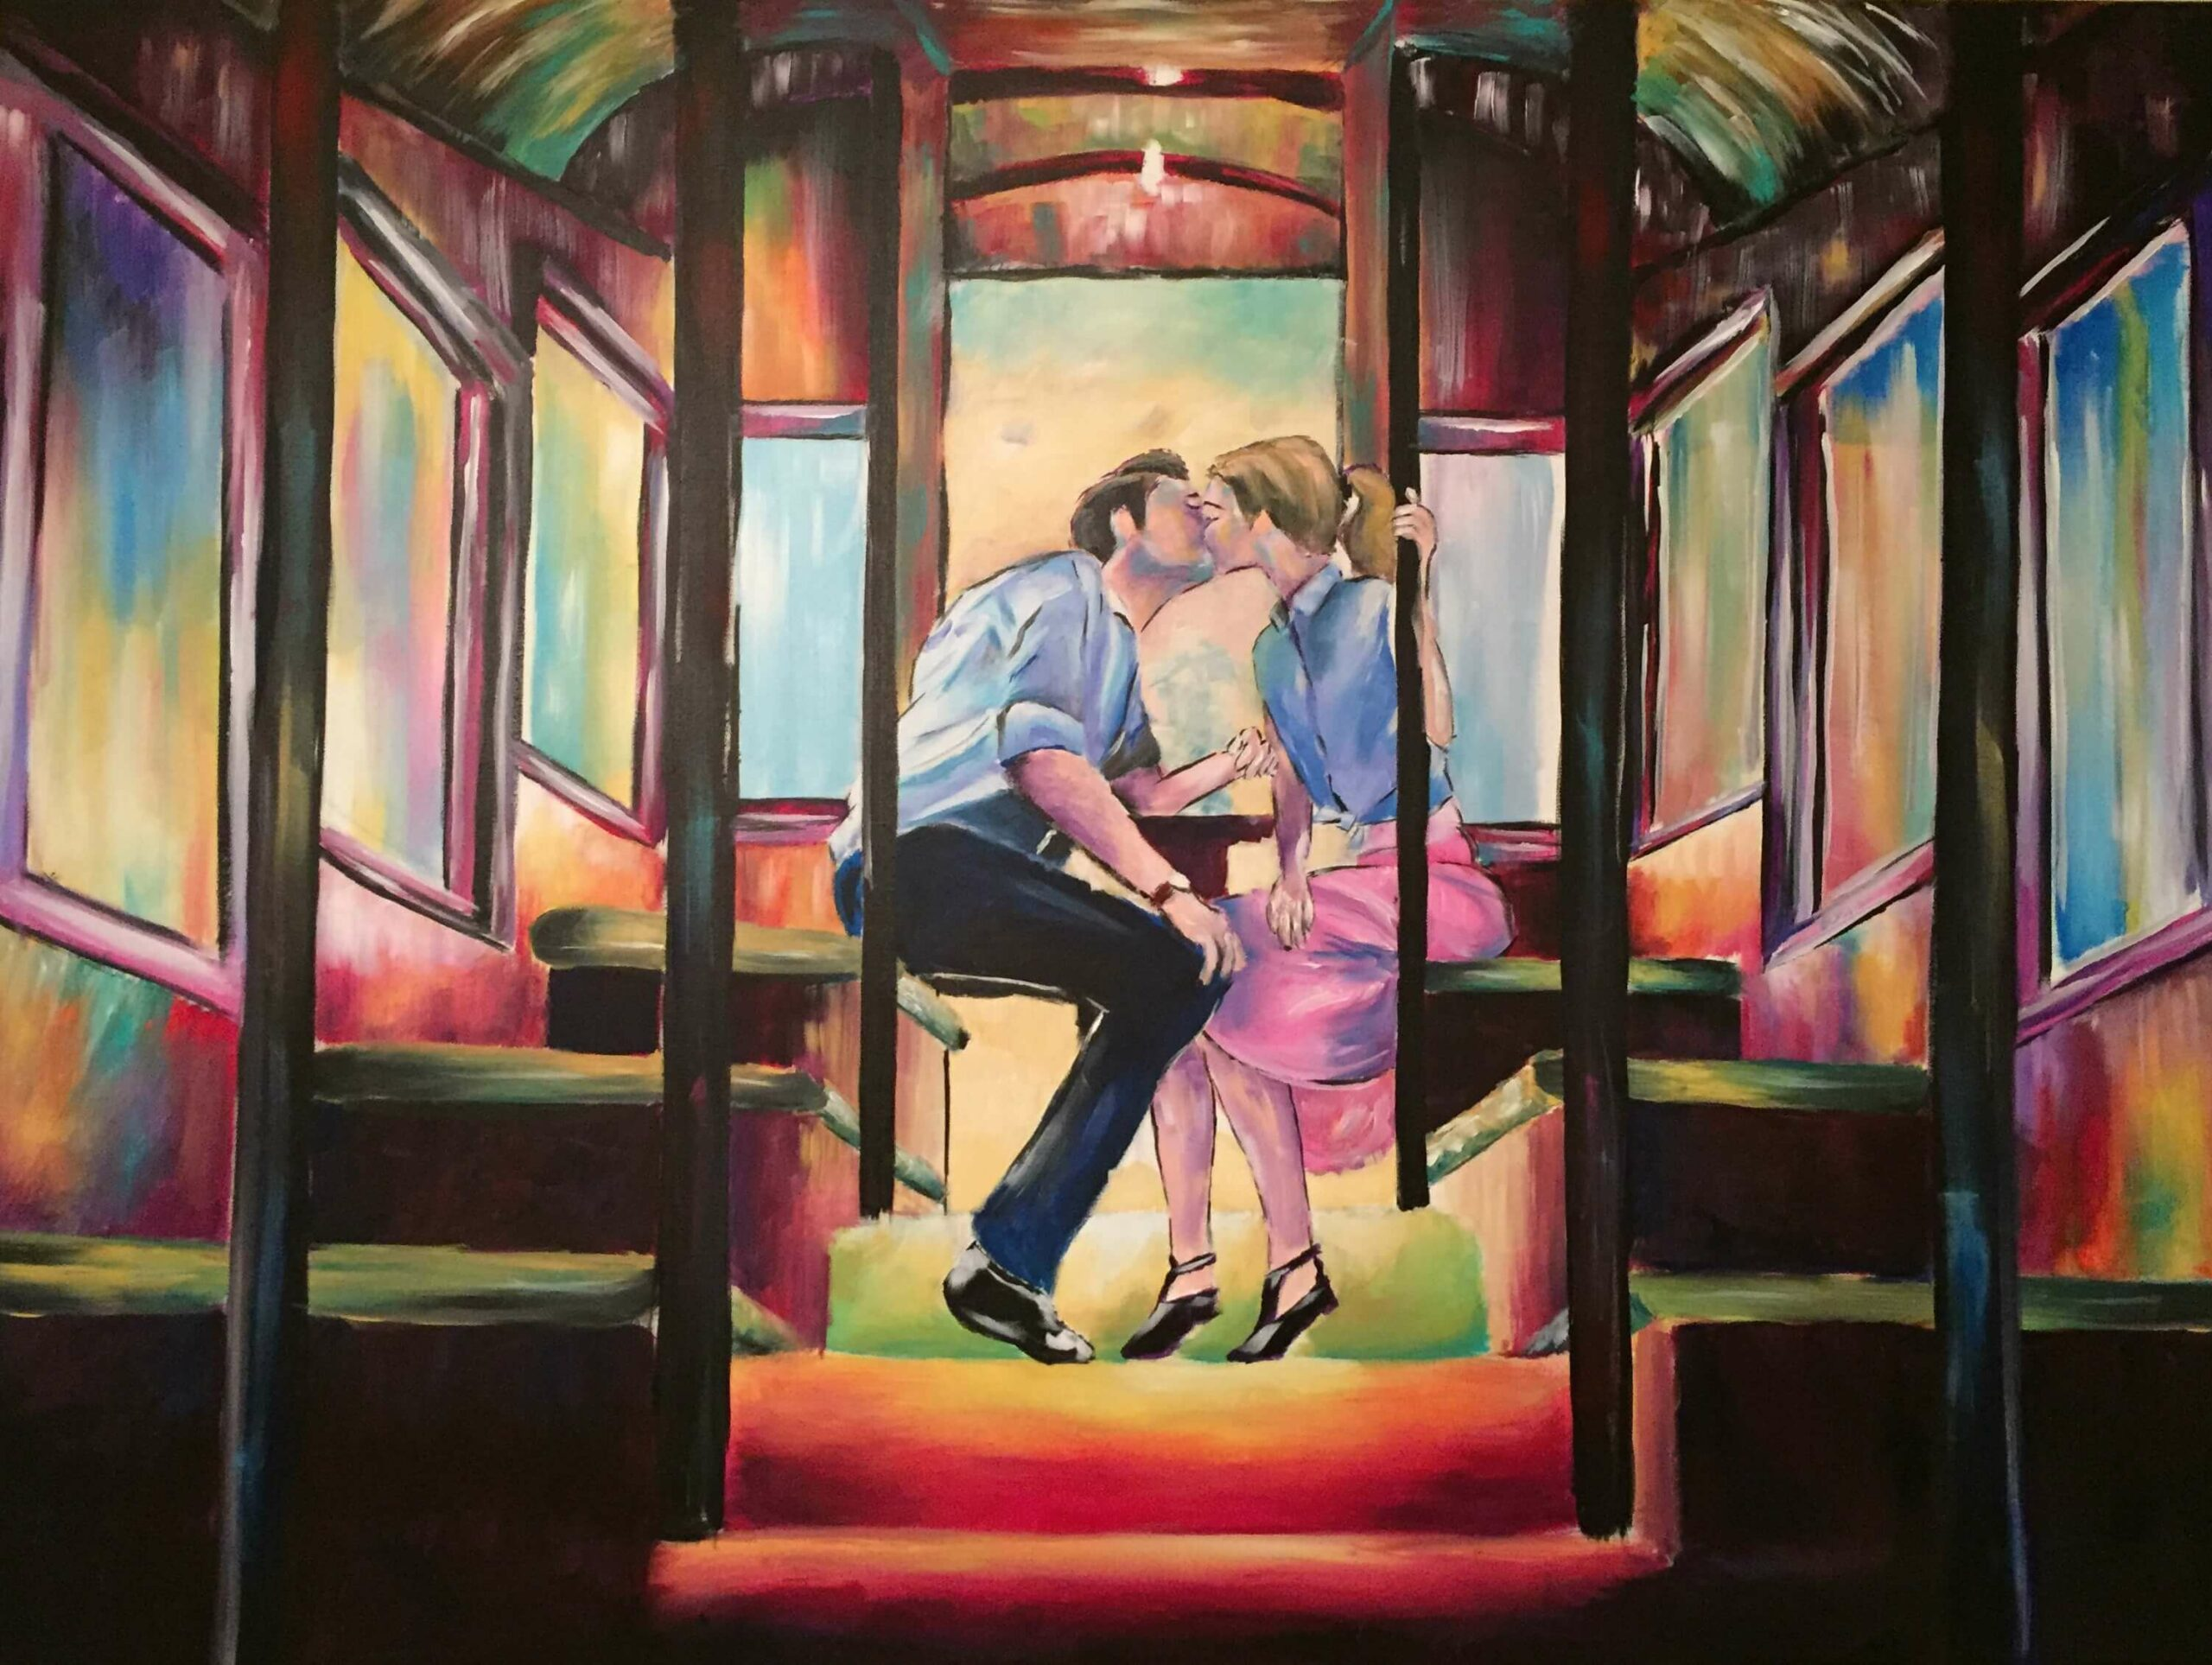 Box Car Love 36x48 Acrylic on Canvas by Taylor Wise